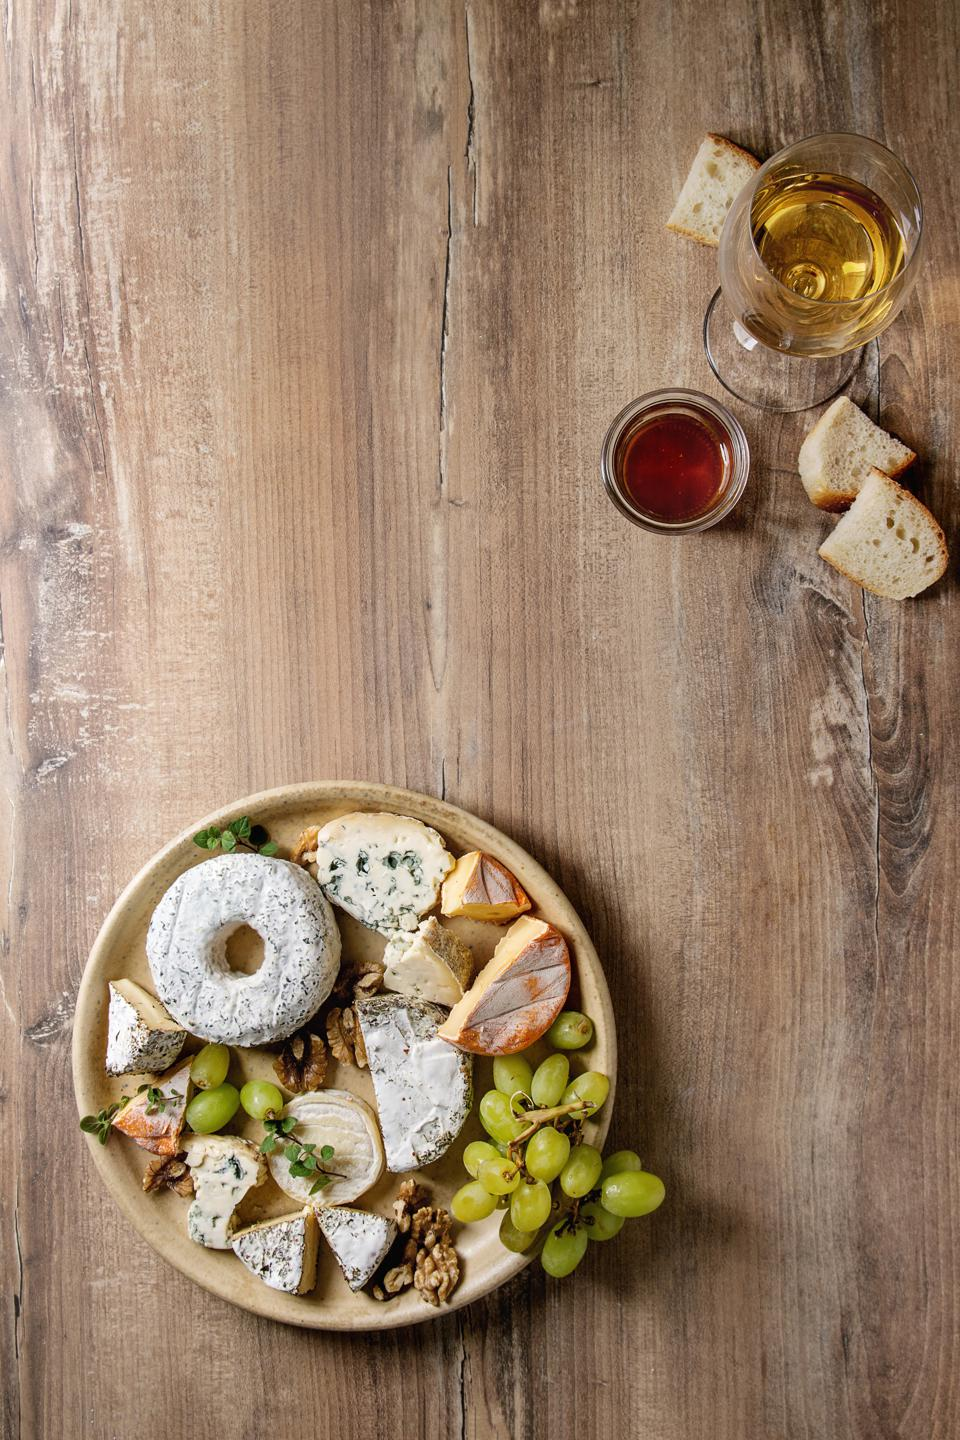 Cheese plate assortment of french cheese served with honey, walnuts, bread and grapes on ceramic plate with glass of white wine over wood texture background Top view, space